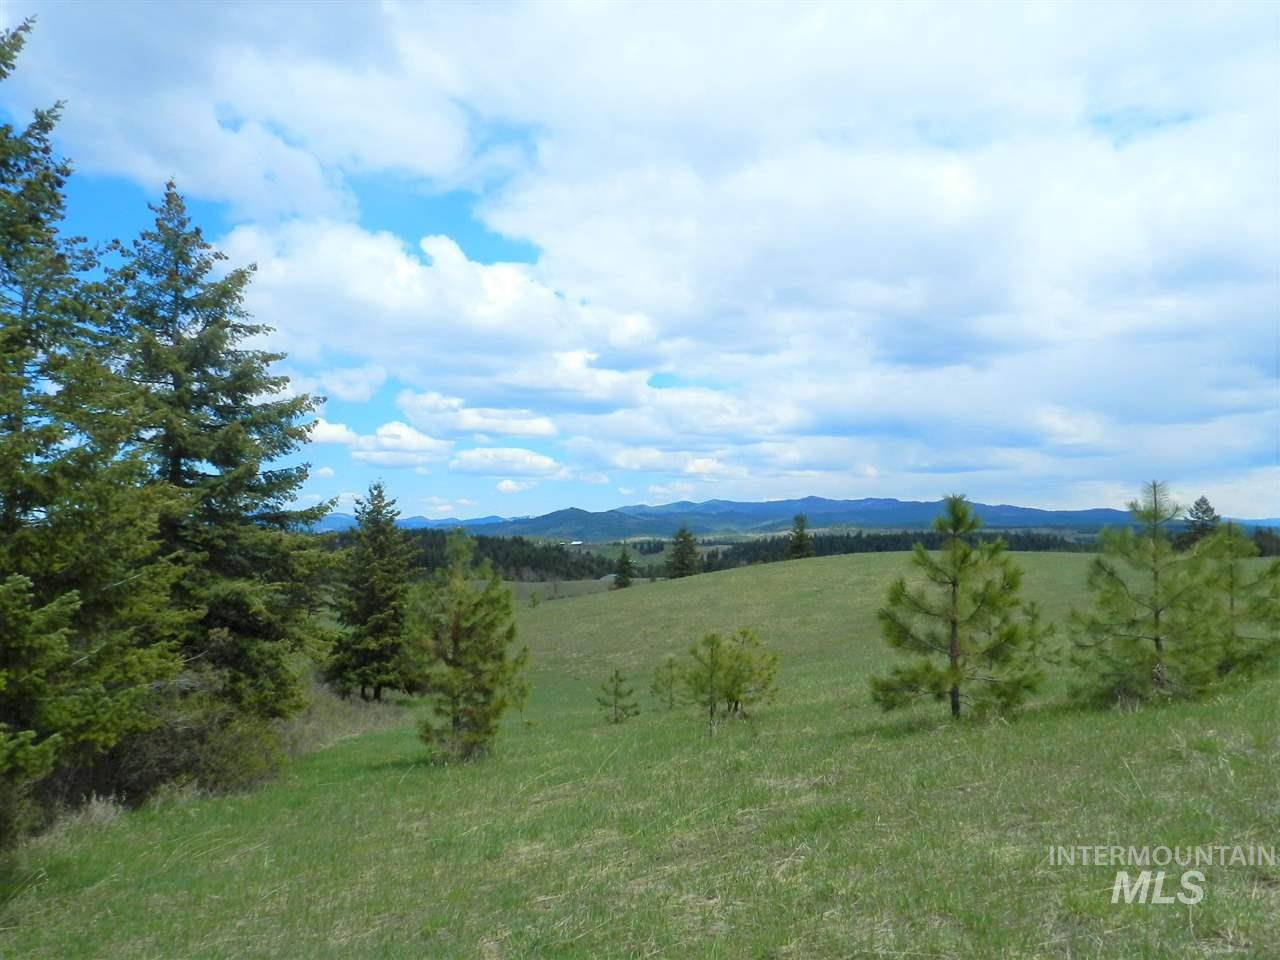 NNA Grange Park Road Parcel #4, Princeton, Idaho 83857, Land For Sale, Price $275,000, 98718532